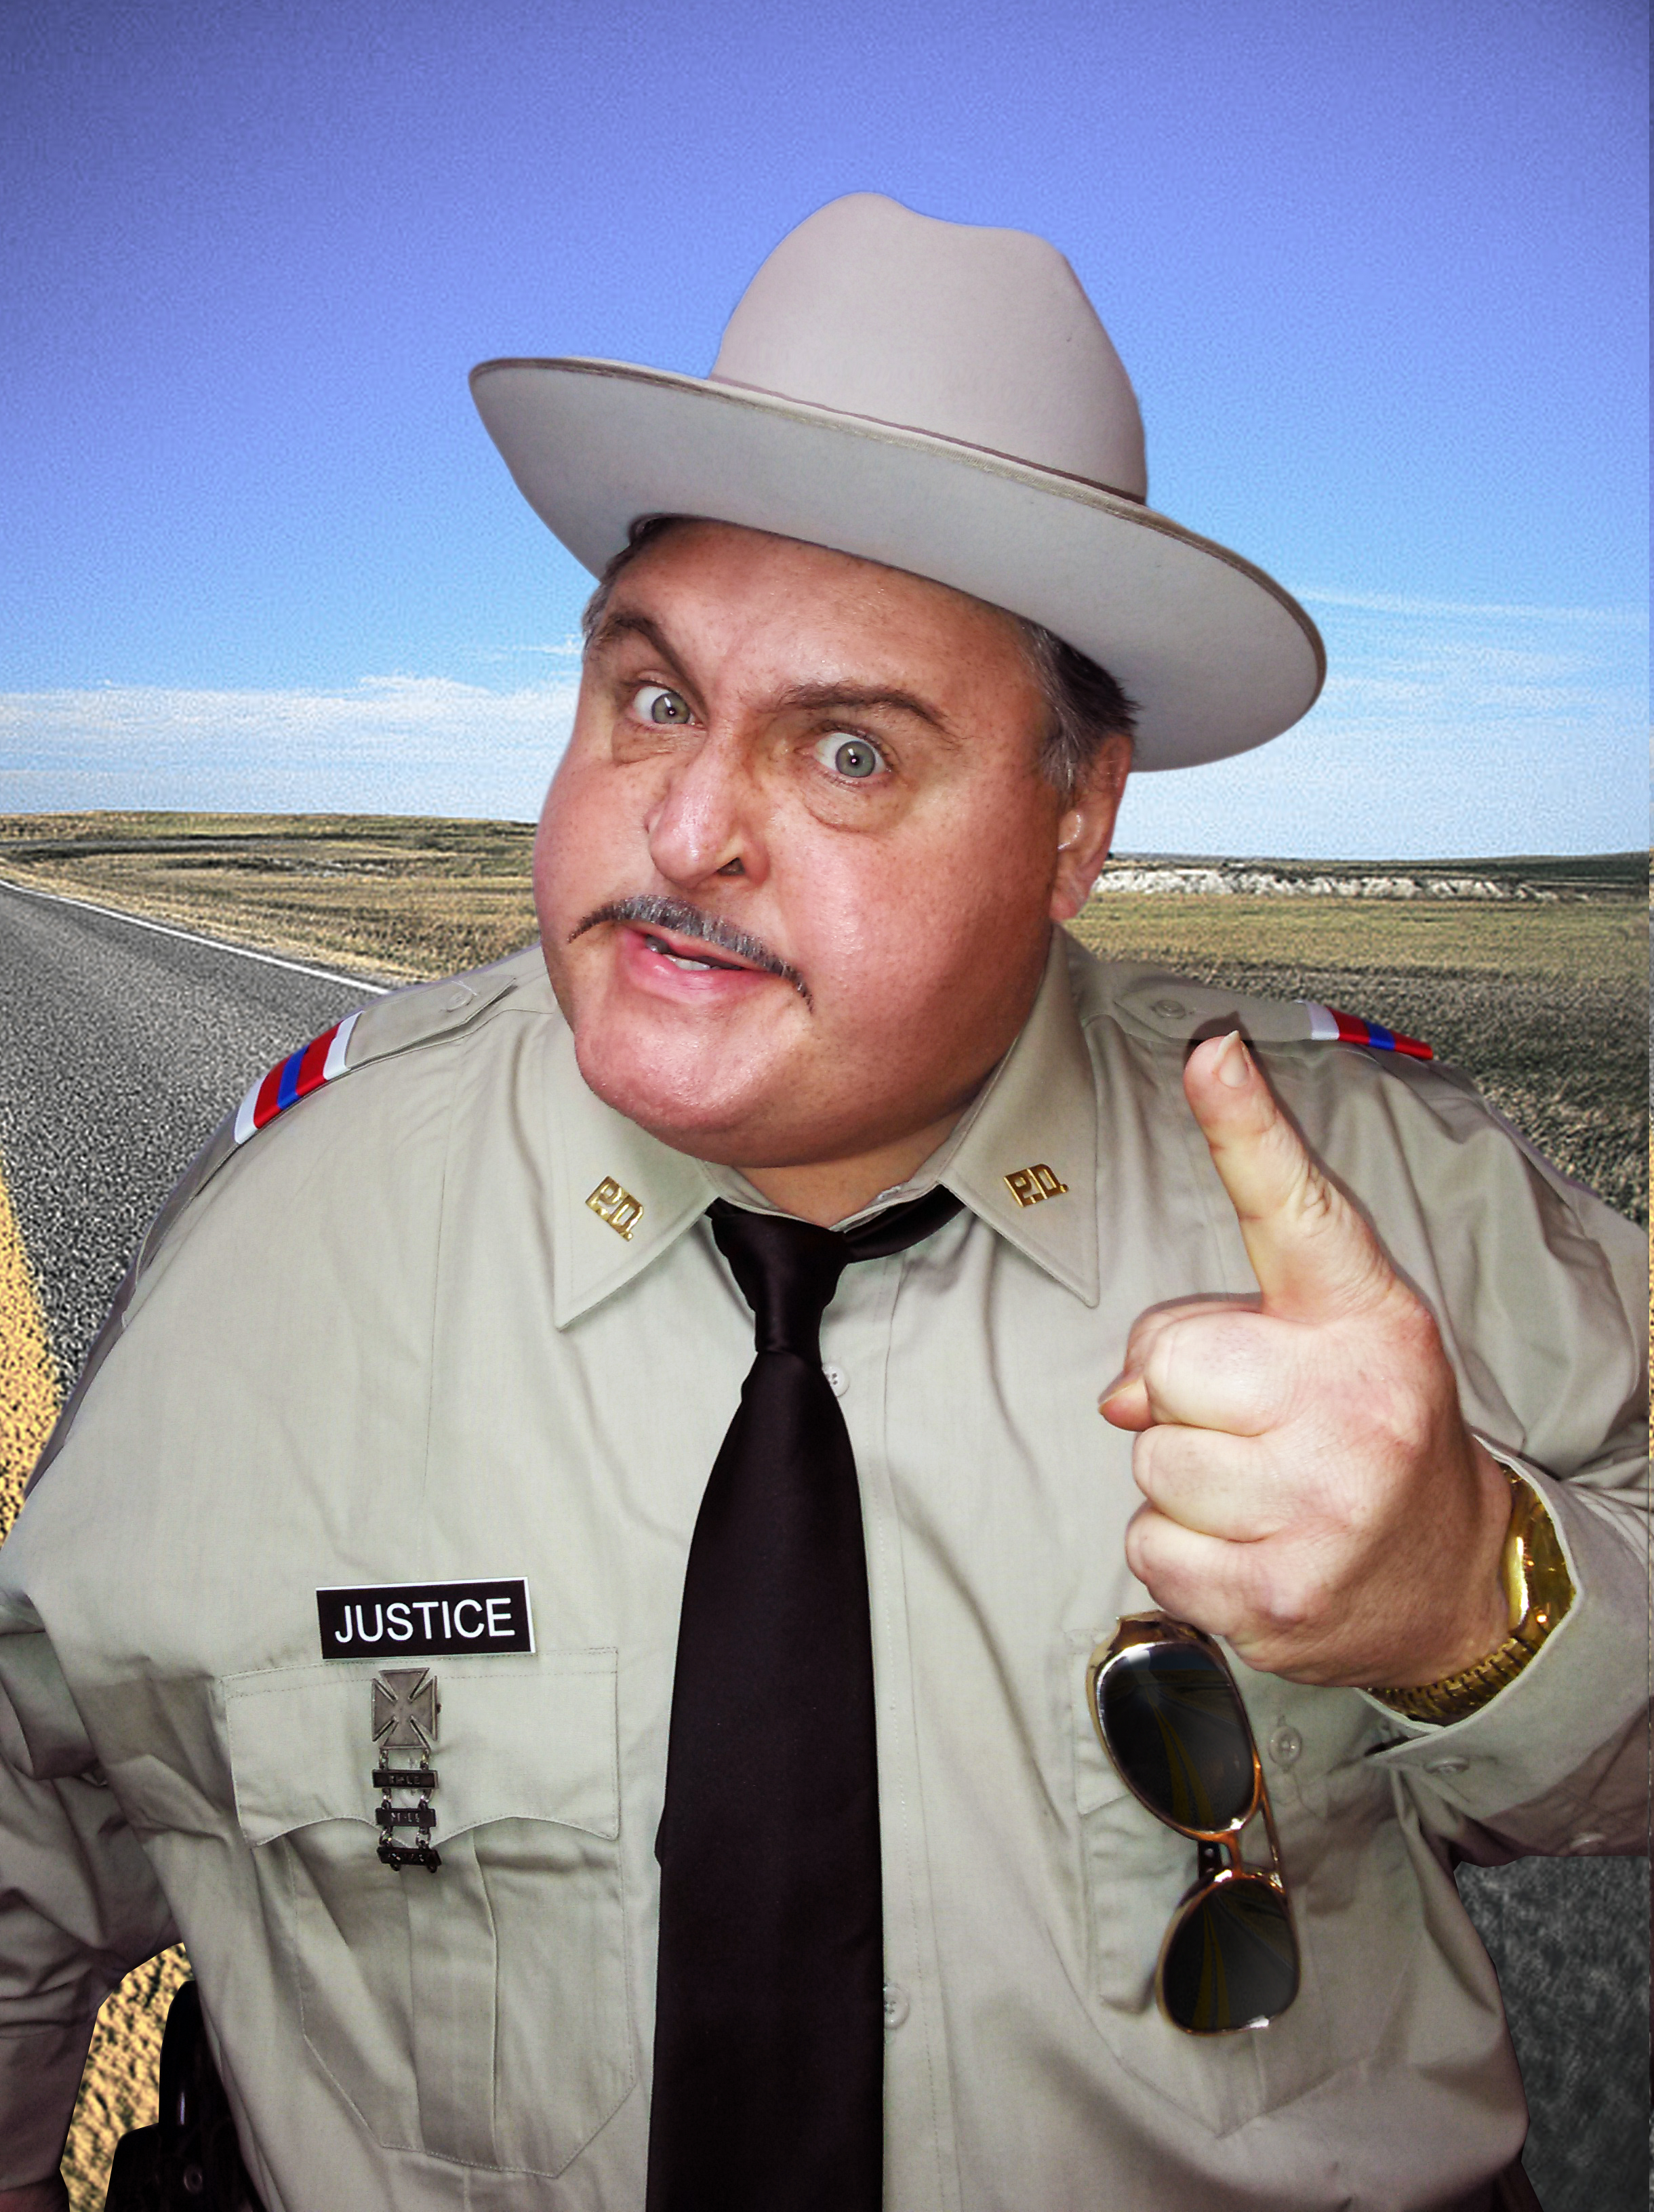 Michael Walters as Buford T Justice 2